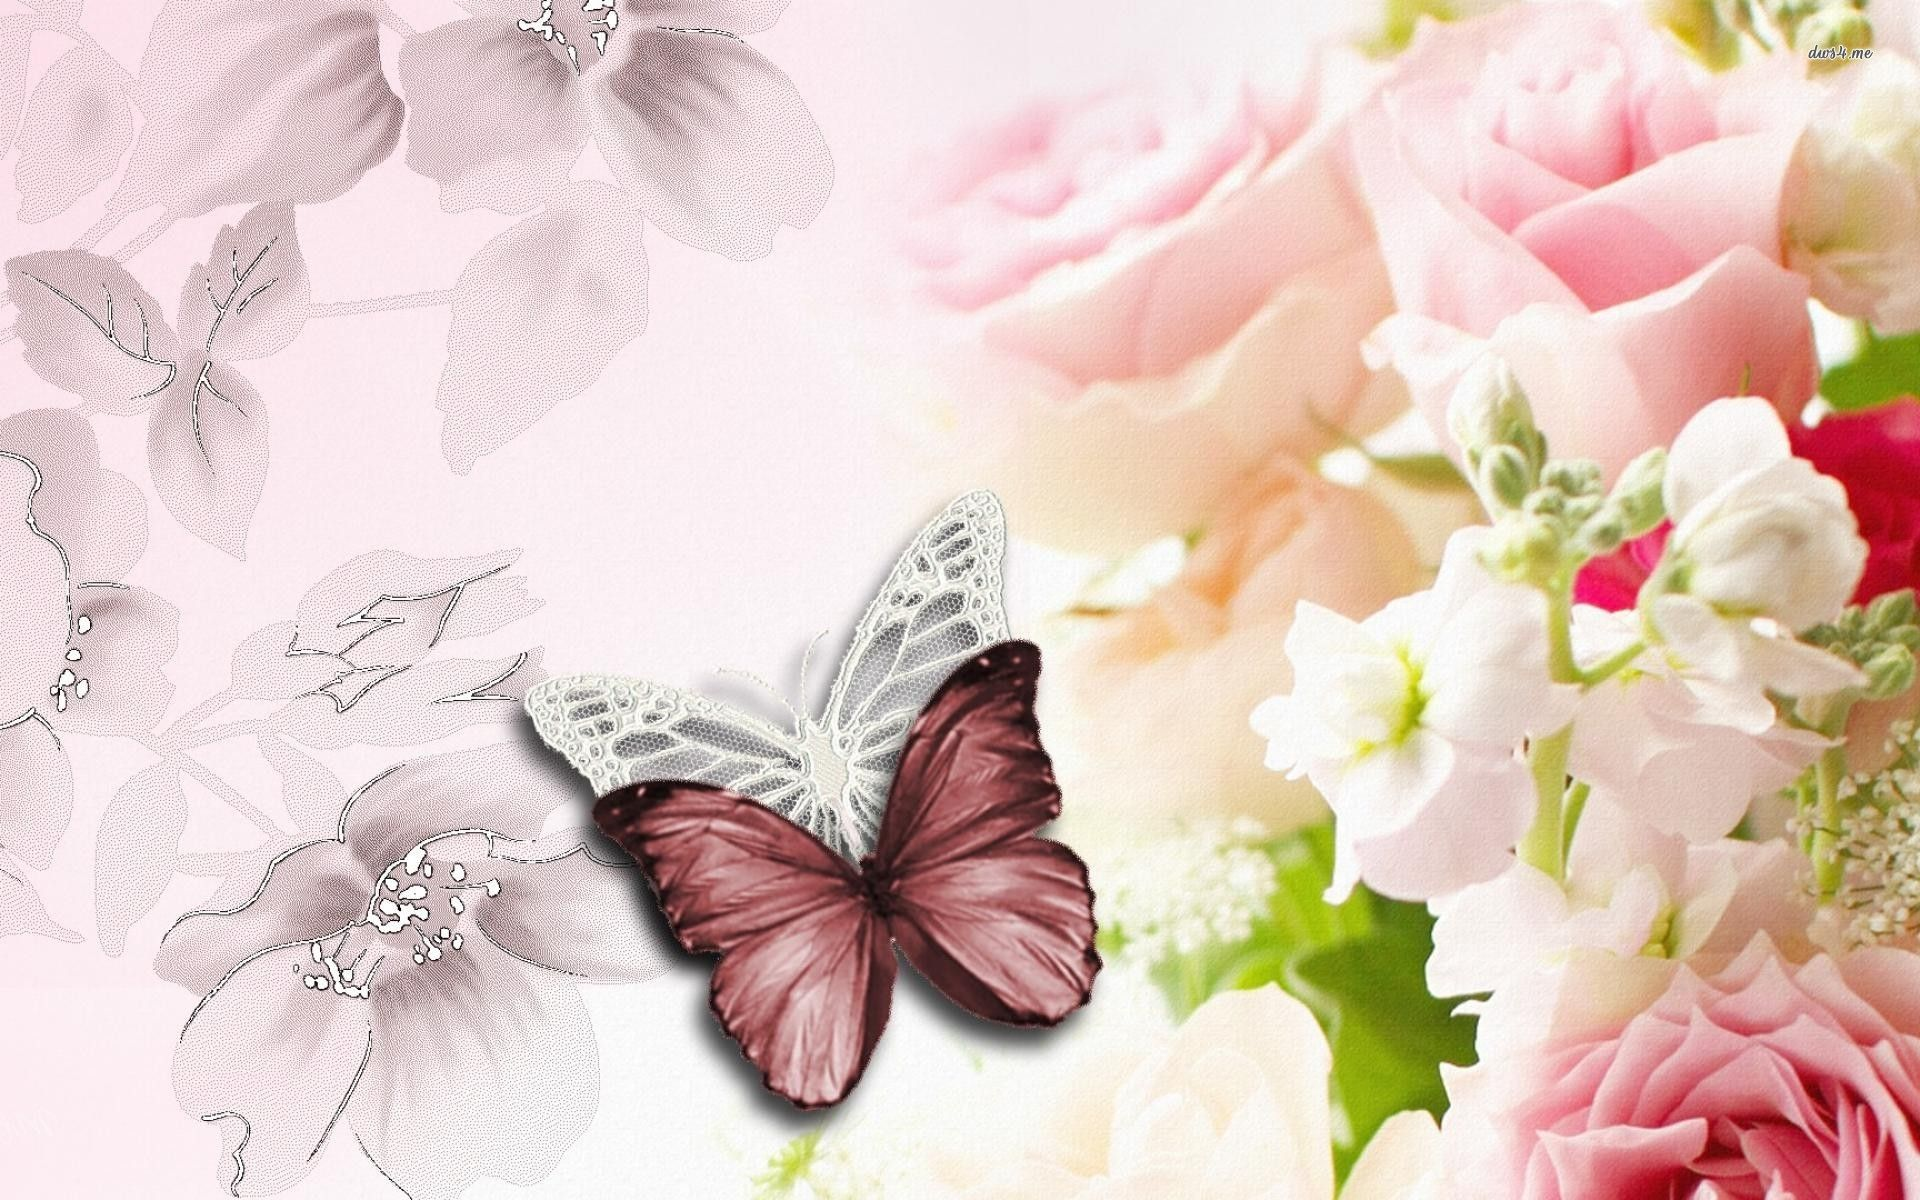 butterfly live wallpaper android apps on google play 1920a—1200